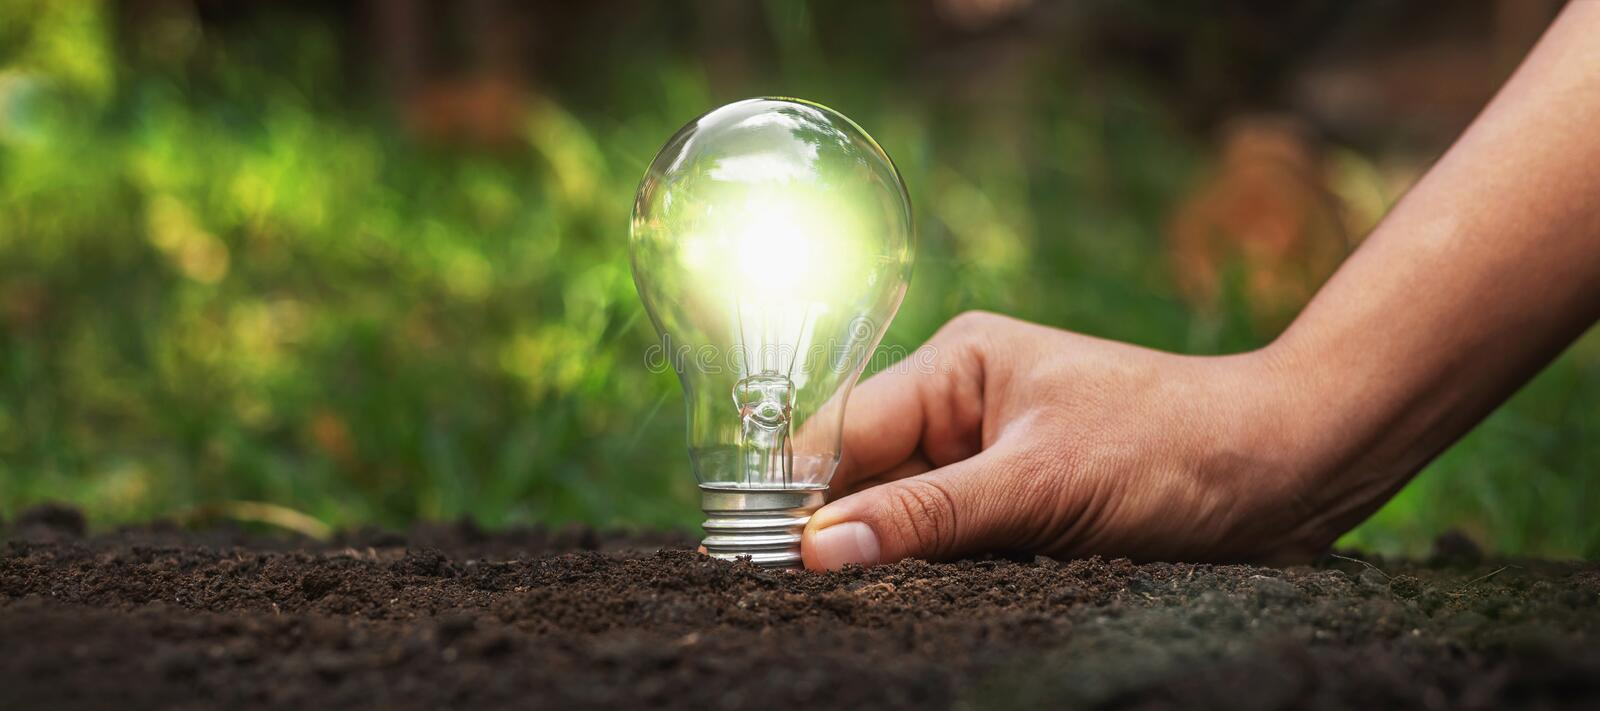 Holding a light bulb on the ground Energy saving concept. Soil, sustainability, innovation, idea, plant, nature, ecology, sustainable, electric, technology stock photo